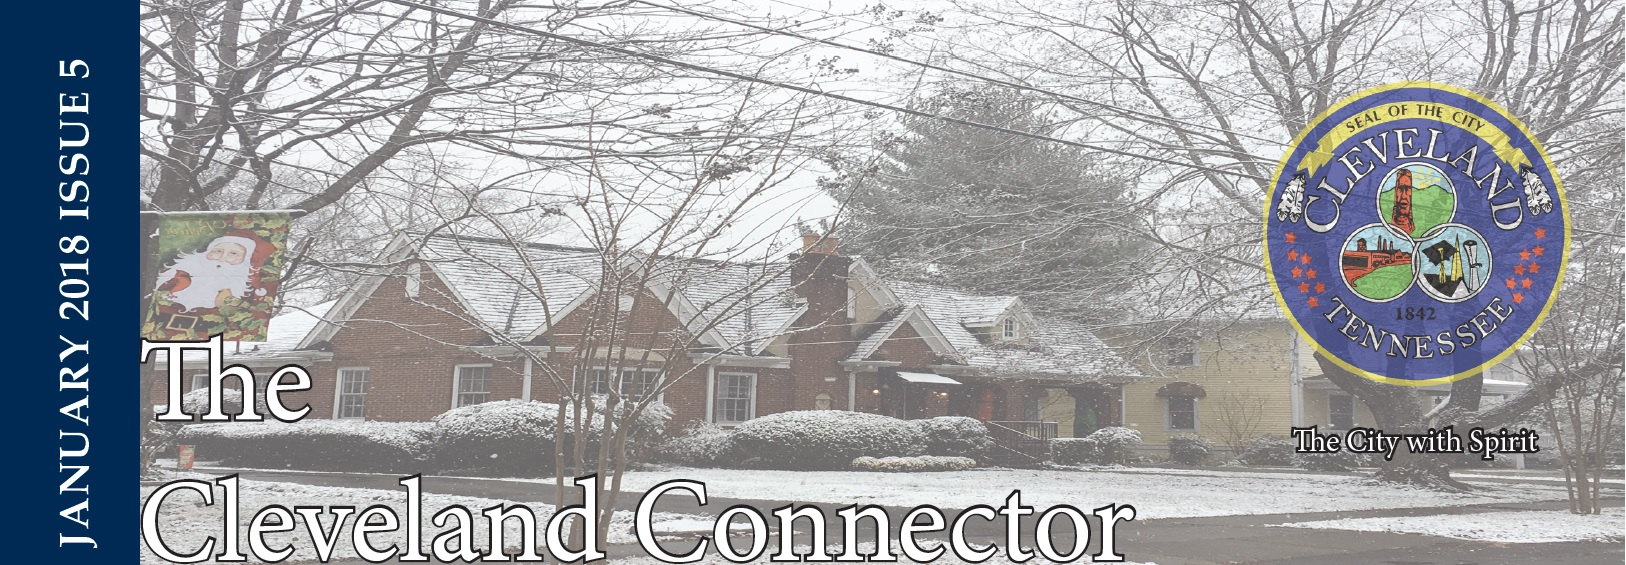 January 2018 Issue 5 - The Cleveland Connector Opens in new window